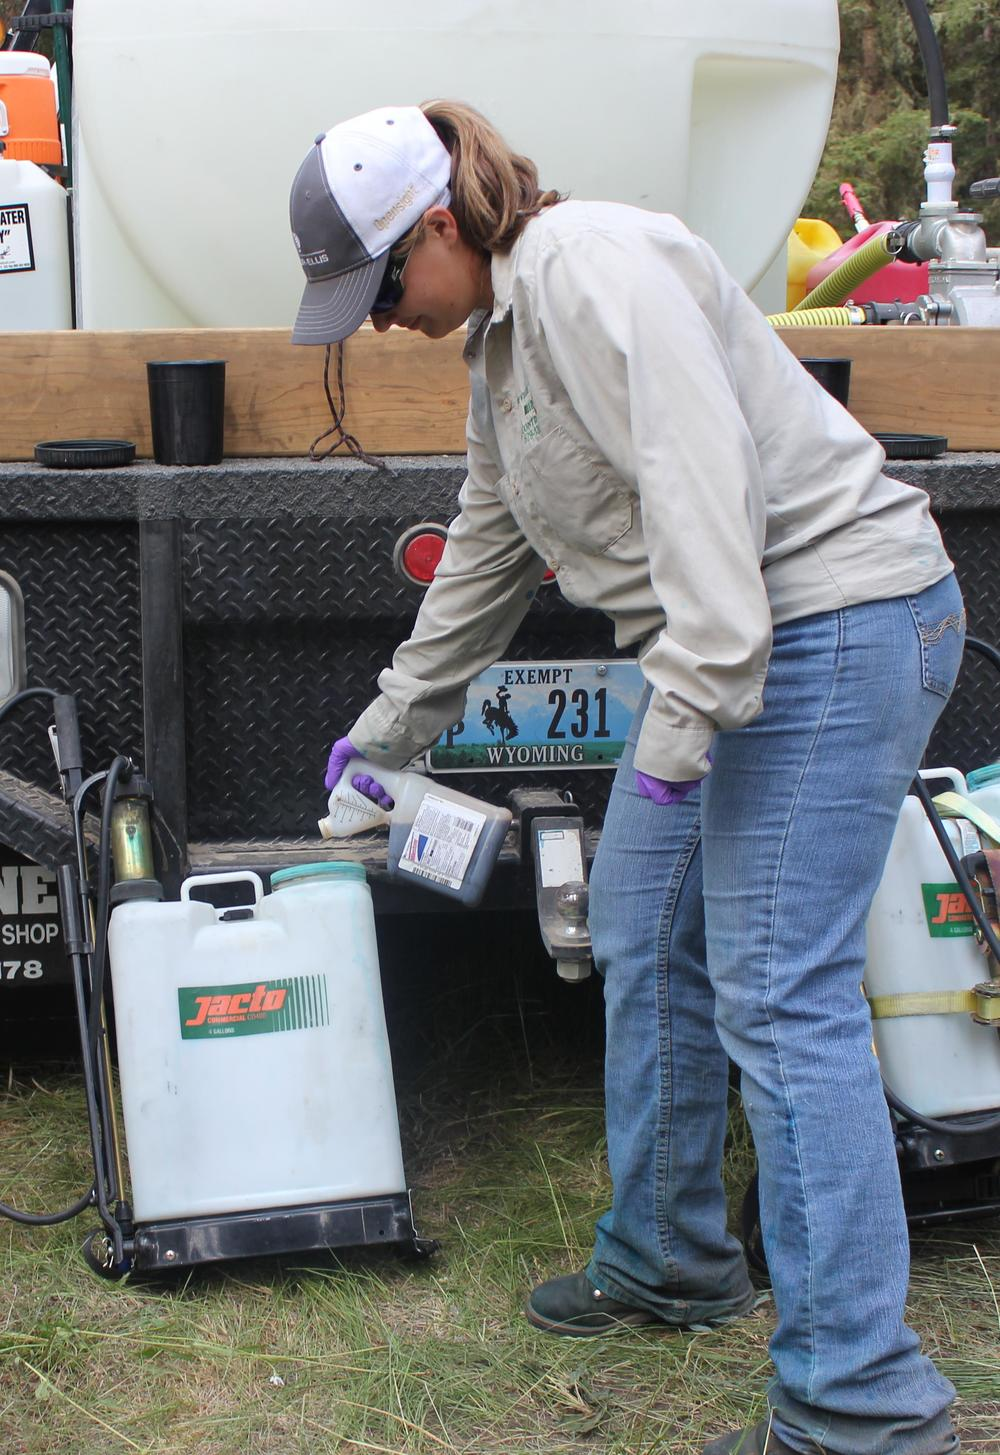 "Tasha Mohler with Bonneville County Weed District, Idaho Falls, Idaho adds Milestone® herbicide to a backpack sprayer.  Photo by Celestine Duncan .                                0     false             18 pt     18 pt     0     0         false     false     false                                                          /* Style Definitions */ table.MsoNormalTable 	{mso-style-name:""Table Normal""; 	mso-tstyle-rowband-size:0; 	mso-tstyle-colband-size:0; 	mso-style-noshow:yes; 	mso-style-parent:""""; 	mso-padding-alt:0in 5.4pt 0in 5.4pt; 	mso-para-margin:0in; 	mso-para-margin-bottom:.0001pt; 	mso-pagination:widow-orphan; 	font-size:12.0pt; 	font-family:""Times New Roman""; 	mso-ascii-font-family:Cambria; 	mso-ascii-theme-font:minor-latin; 	mso-hansi-font-family:Cambria; 	mso-hansi-theme-font:minor-latin;}"